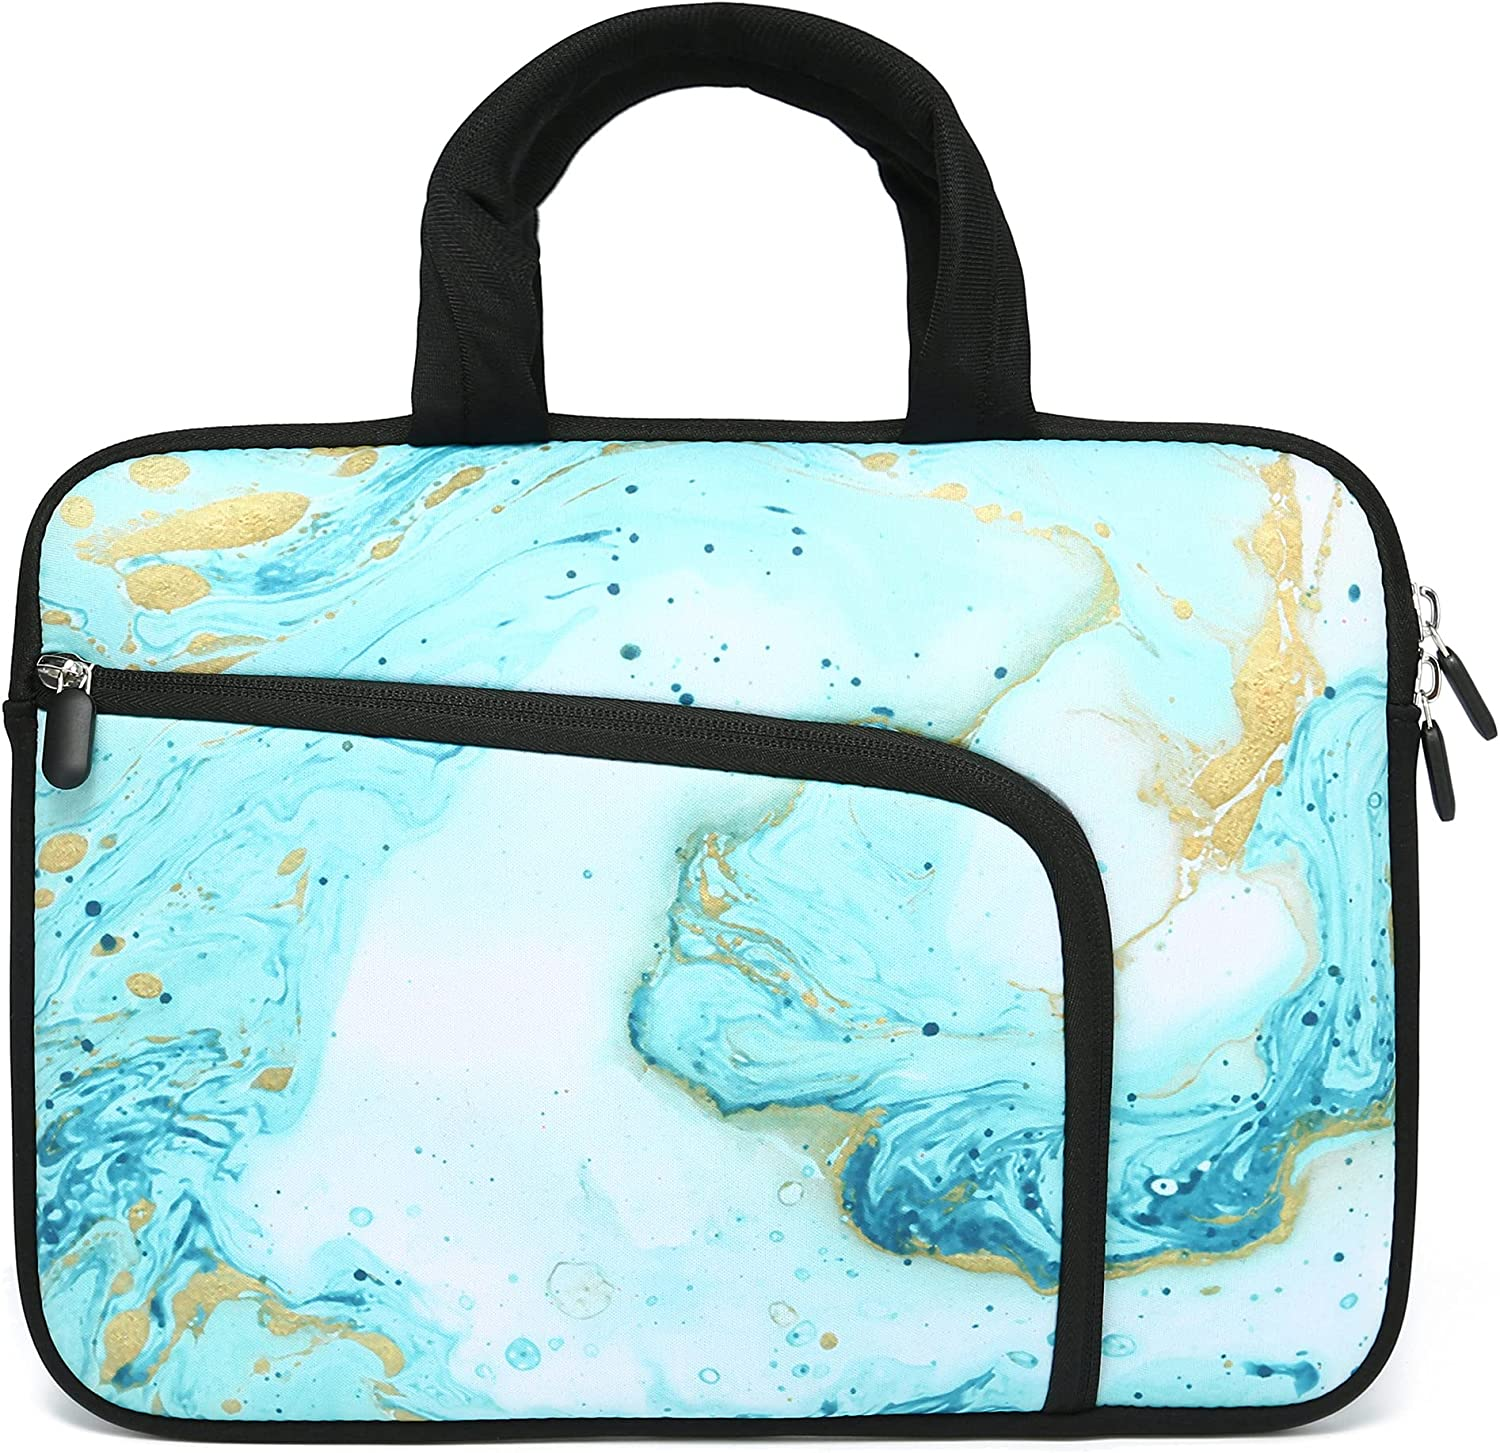 14 15 15.4 15.6 inch Laptop Handle Bag Computer Protect Case Holder Notebook Sleeve Neoprene Cover Soft Carrying Case with Extra Pockets for Dell Lenovo Toshiba HP Chromebook ASUS Acer(Vast Ocean)